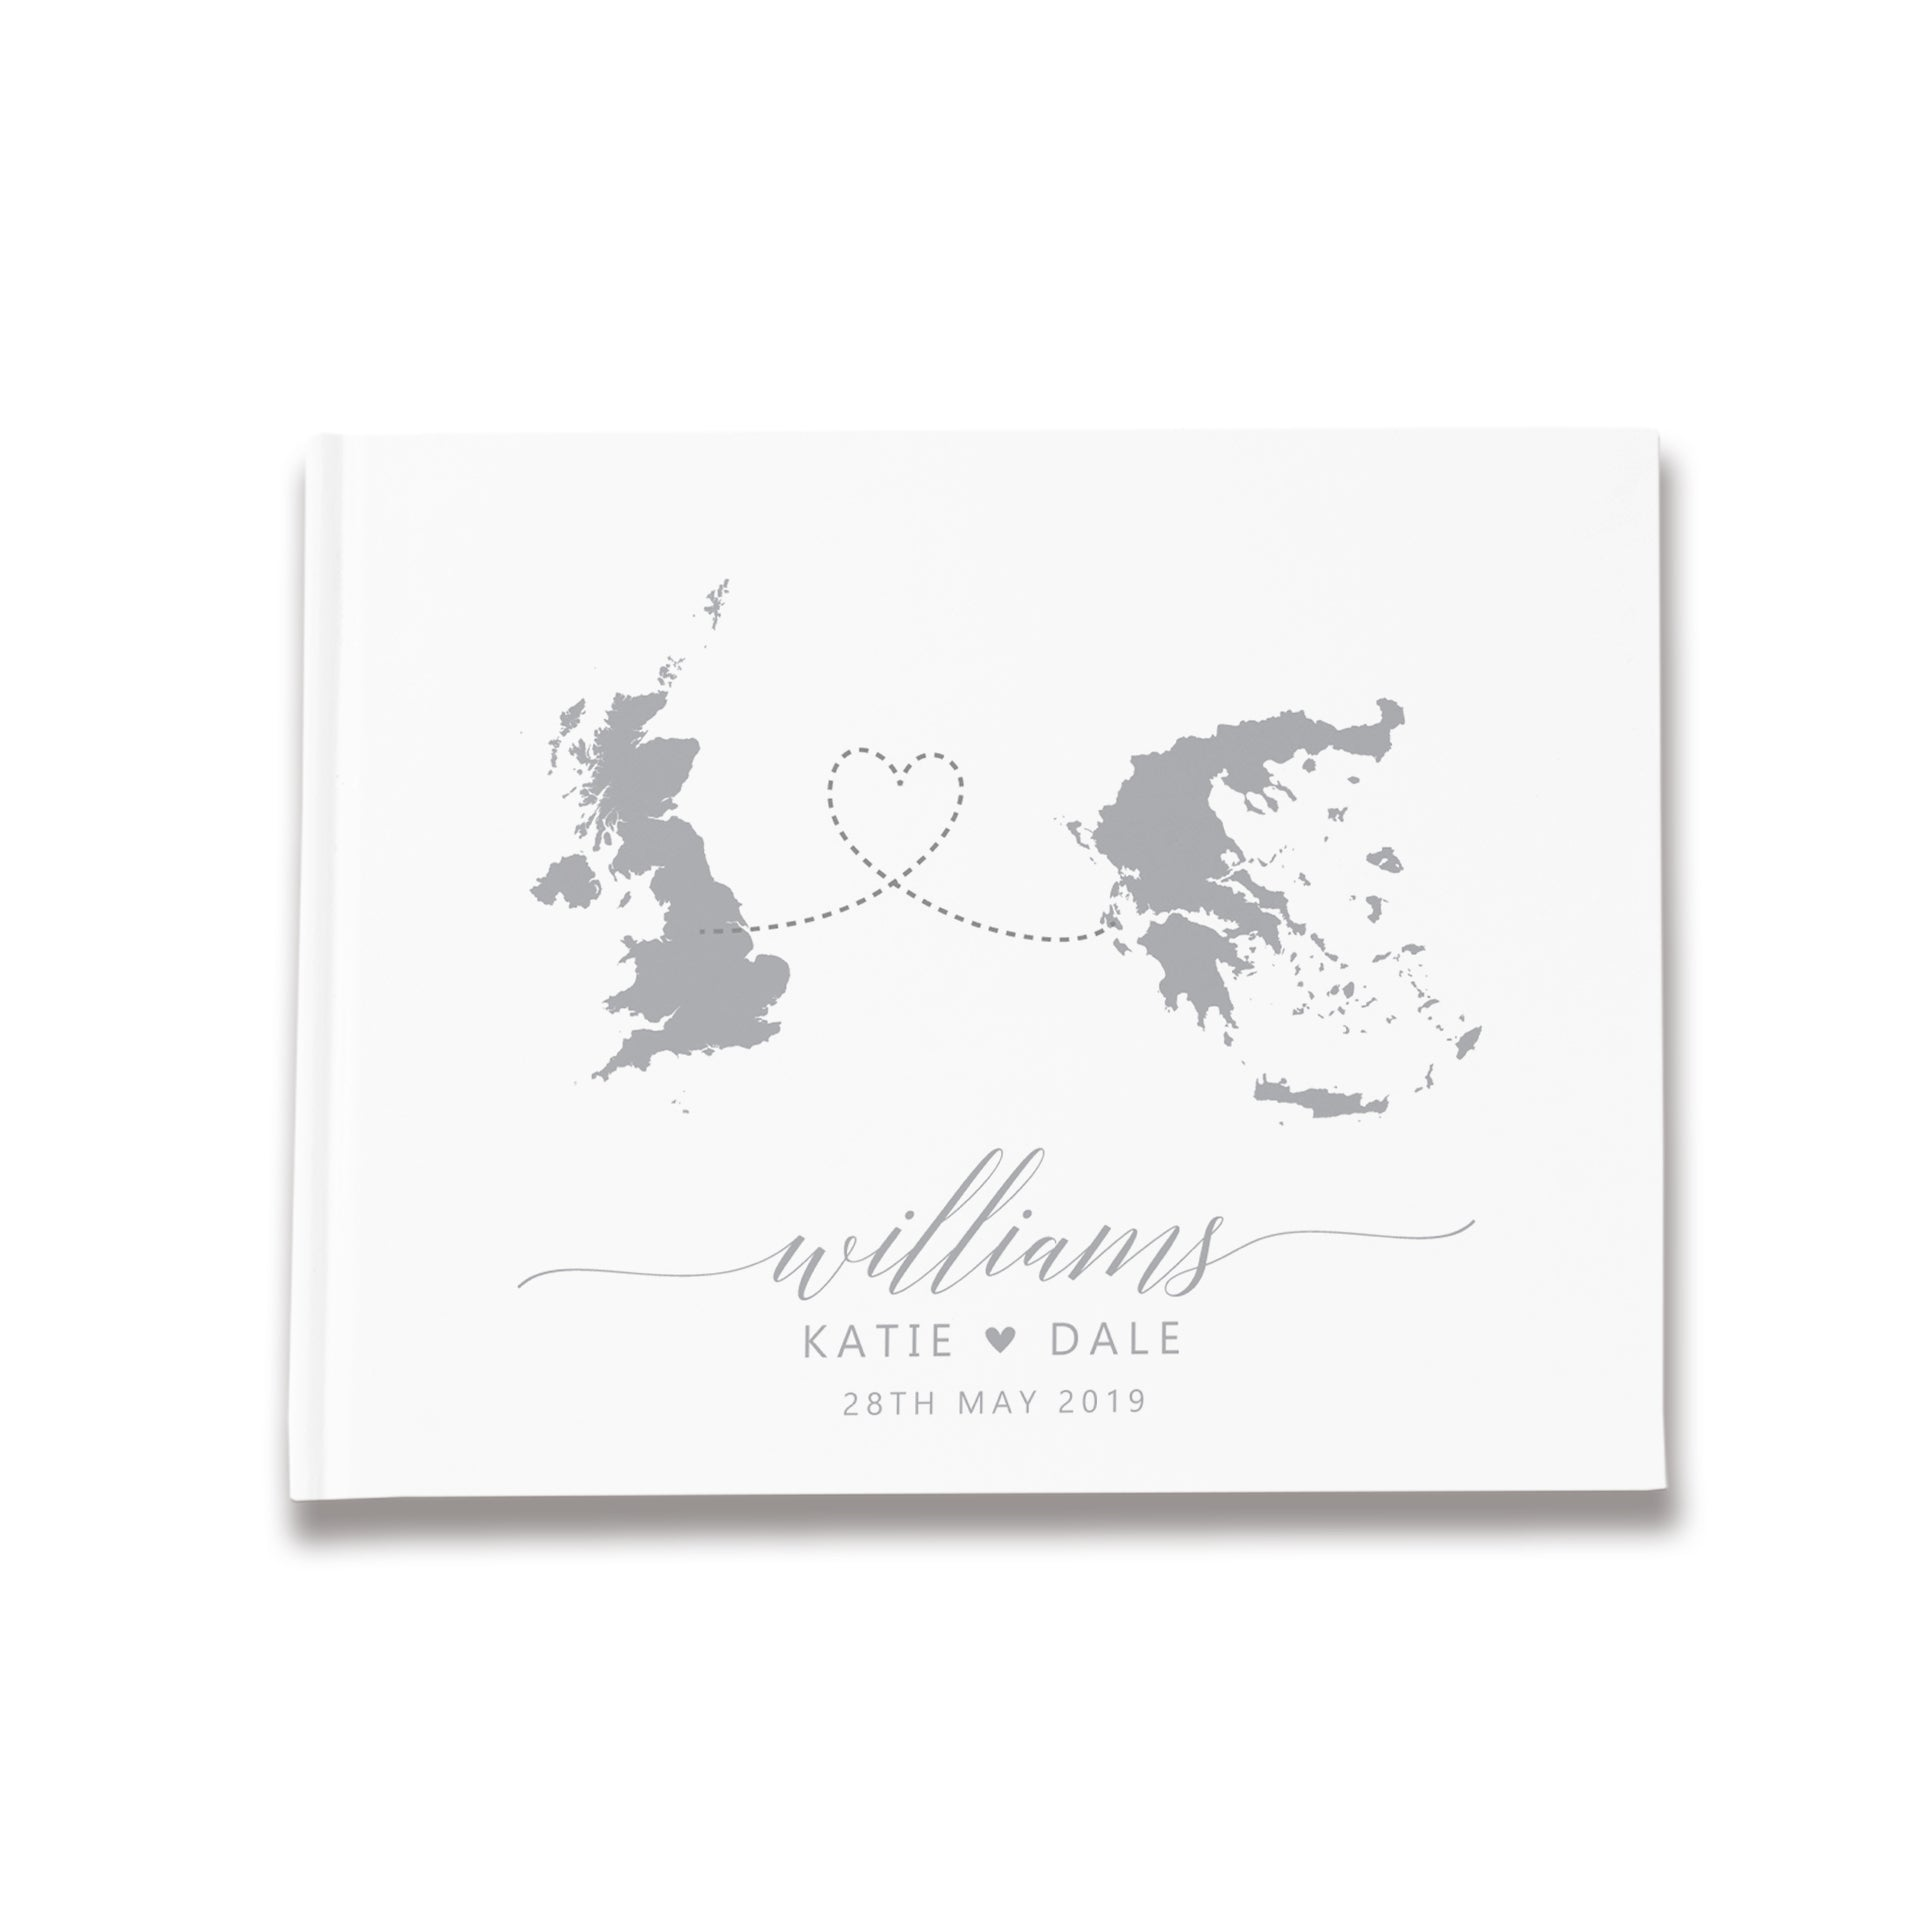 Destinations | White & Grey Wedding Guest Book